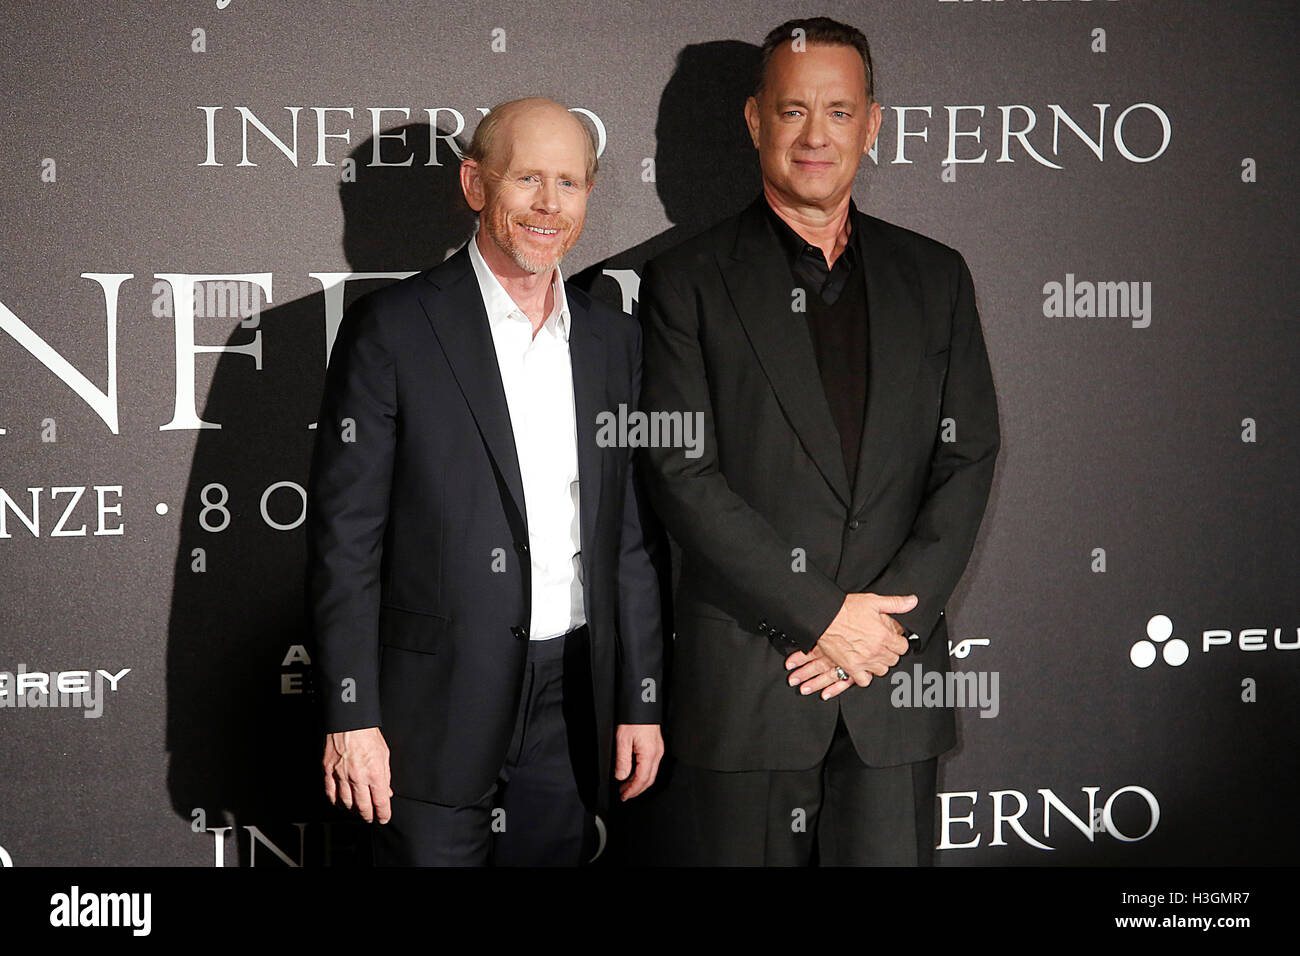 Florence, Italy. 8th October, 2016. Ron Howard and Tom Hanks Florence 8th October 2016. 'Inferno' World - Stock Image